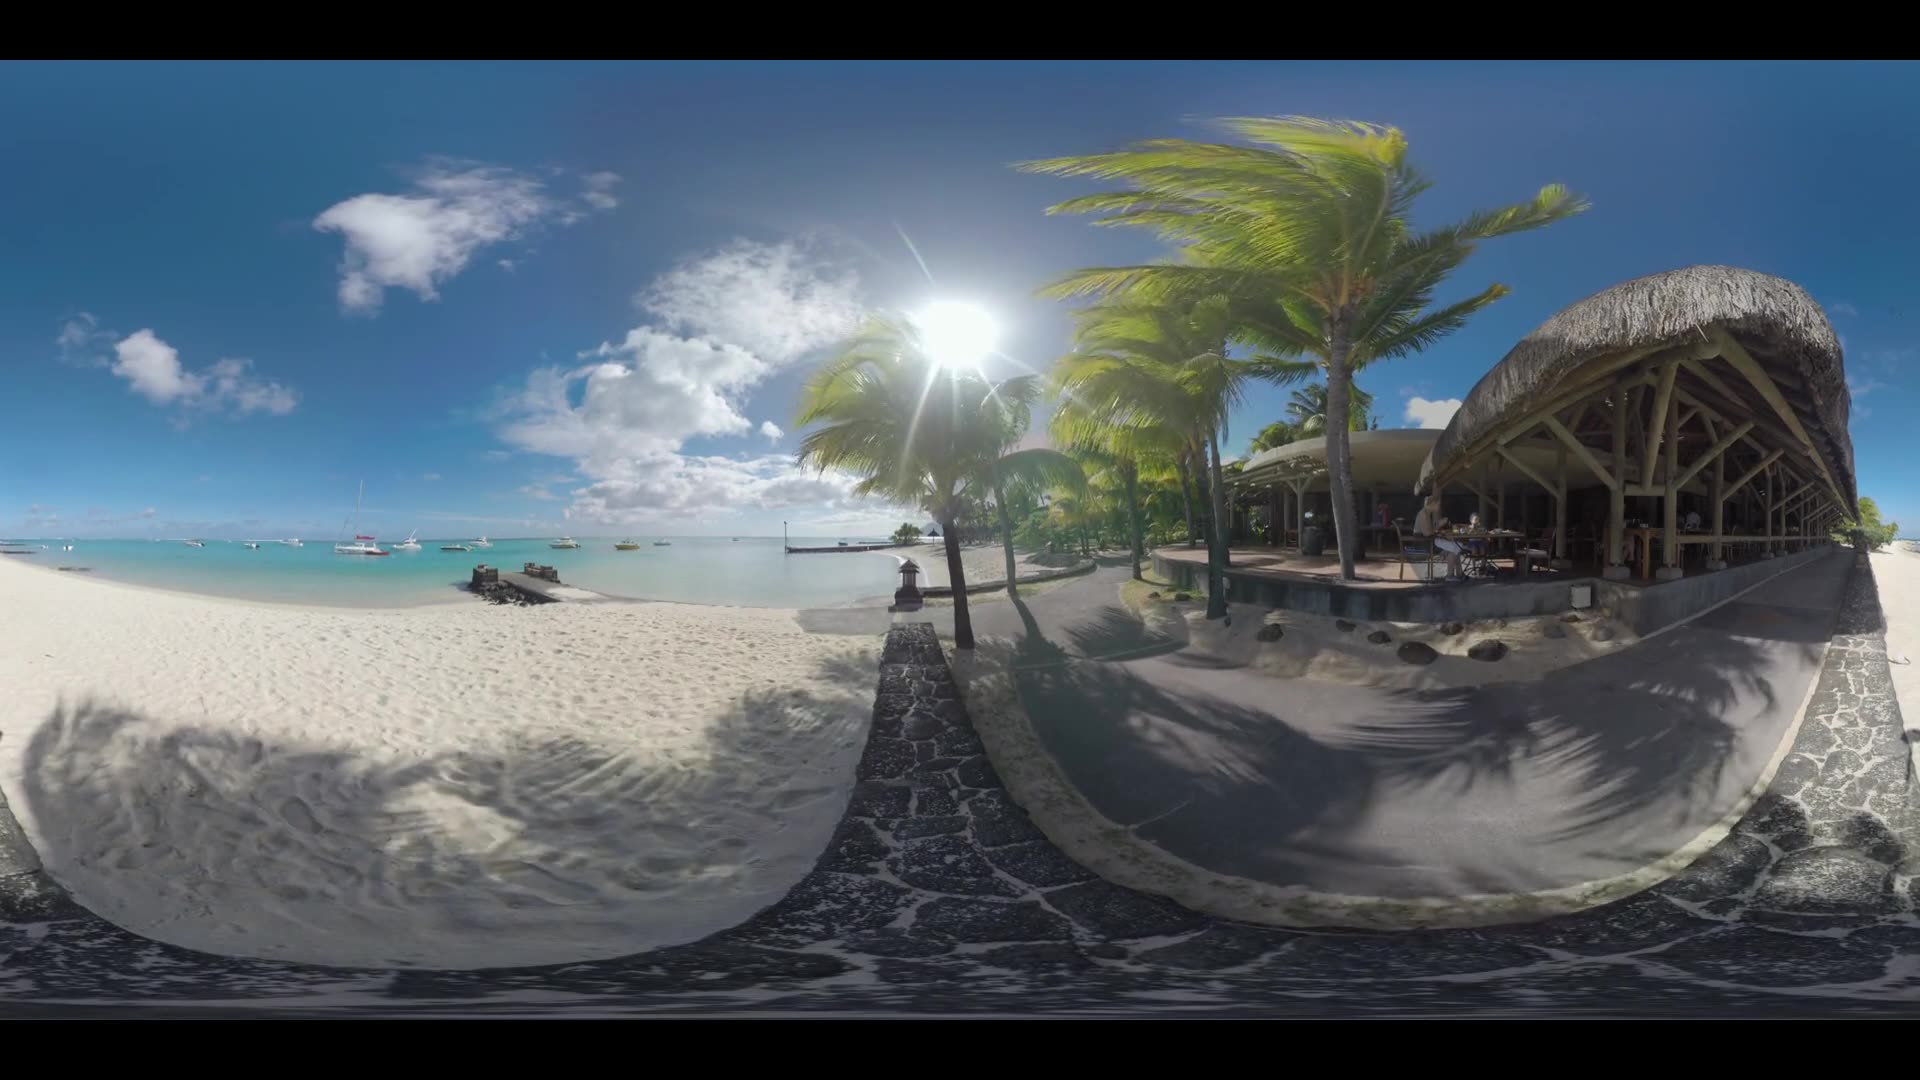 360 VR video. View to the clear blue ocean with yachts and white sand beach with palms. Family having dinner at the restaurant on the coast, Mauritius